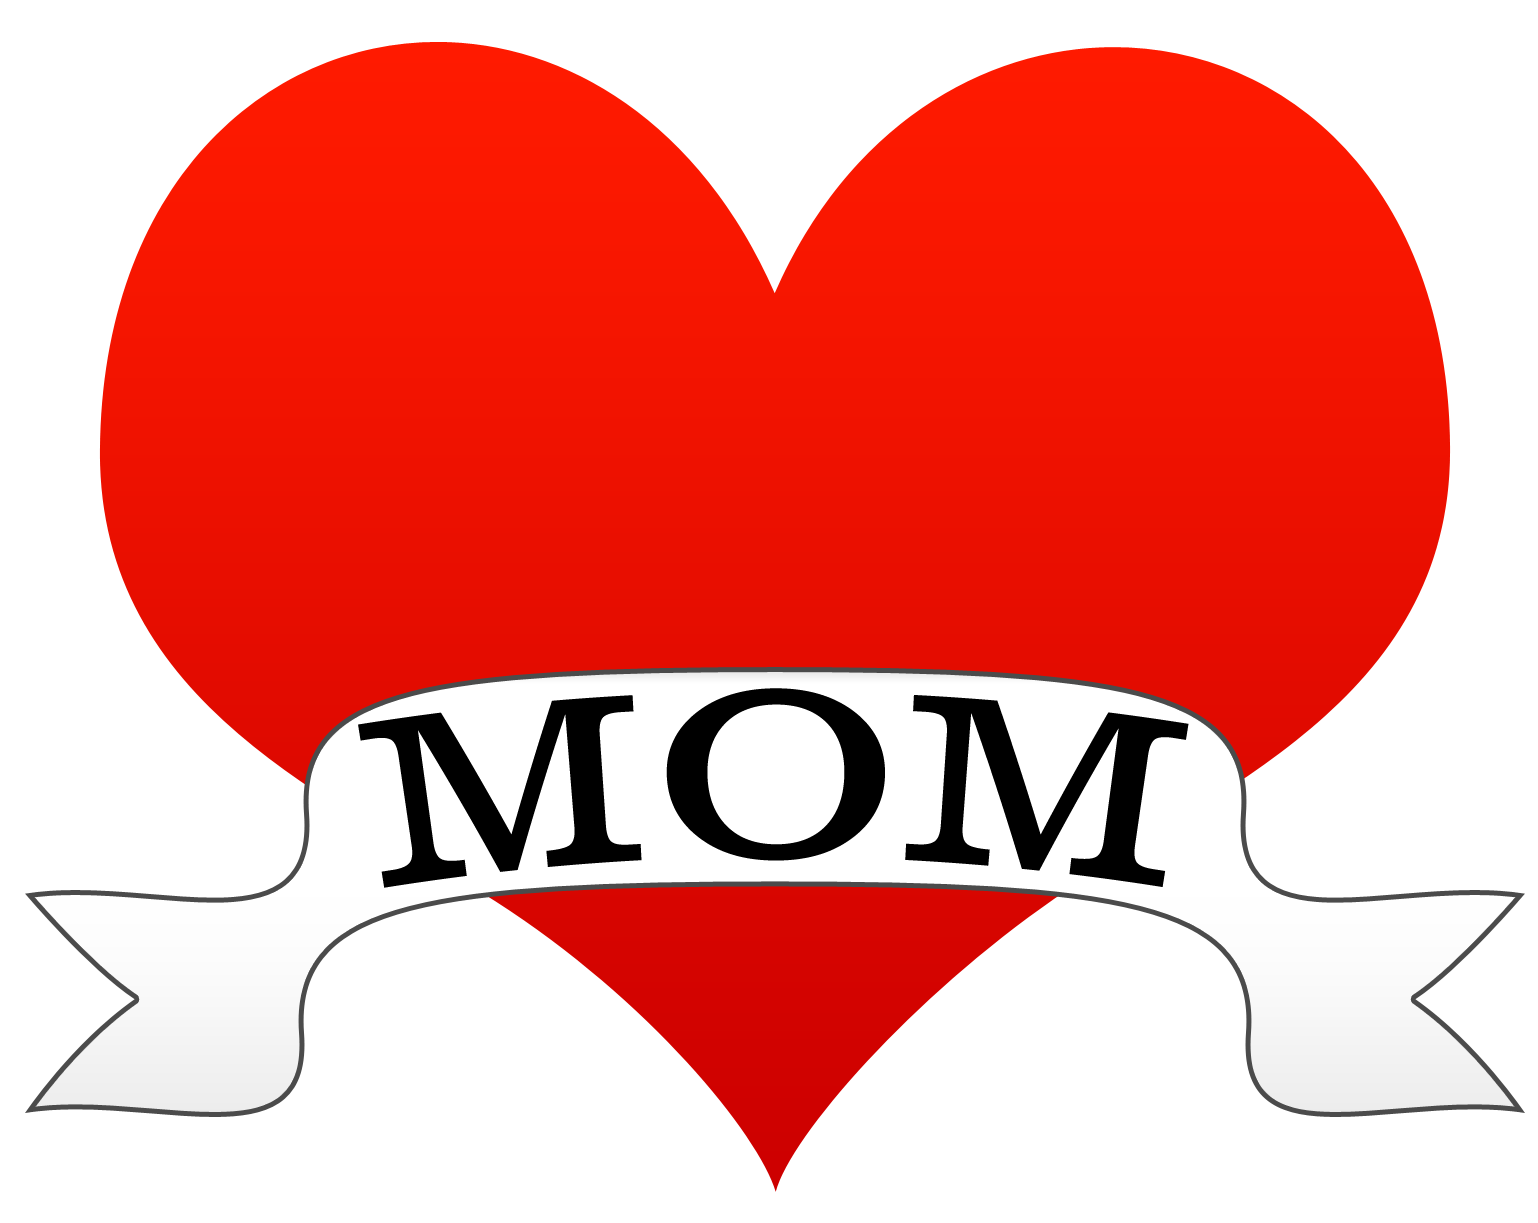 Mom clipart word. The mother panda free